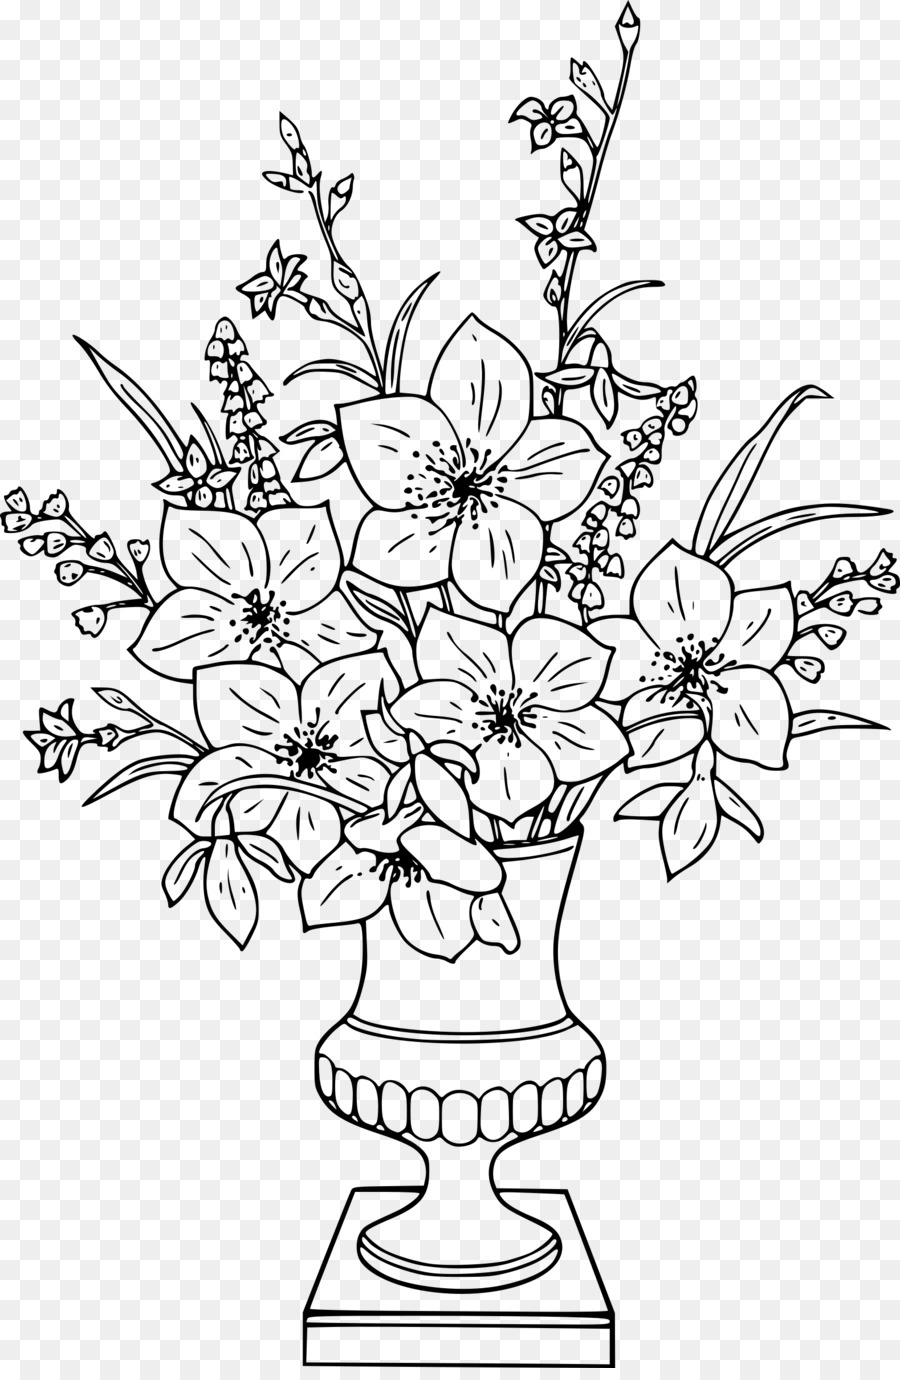 Flowers in a vase a vase of flowers drawing gladiolus png download flowers in a vase a vase of flowers drawing gladiolus izmirmasajfo